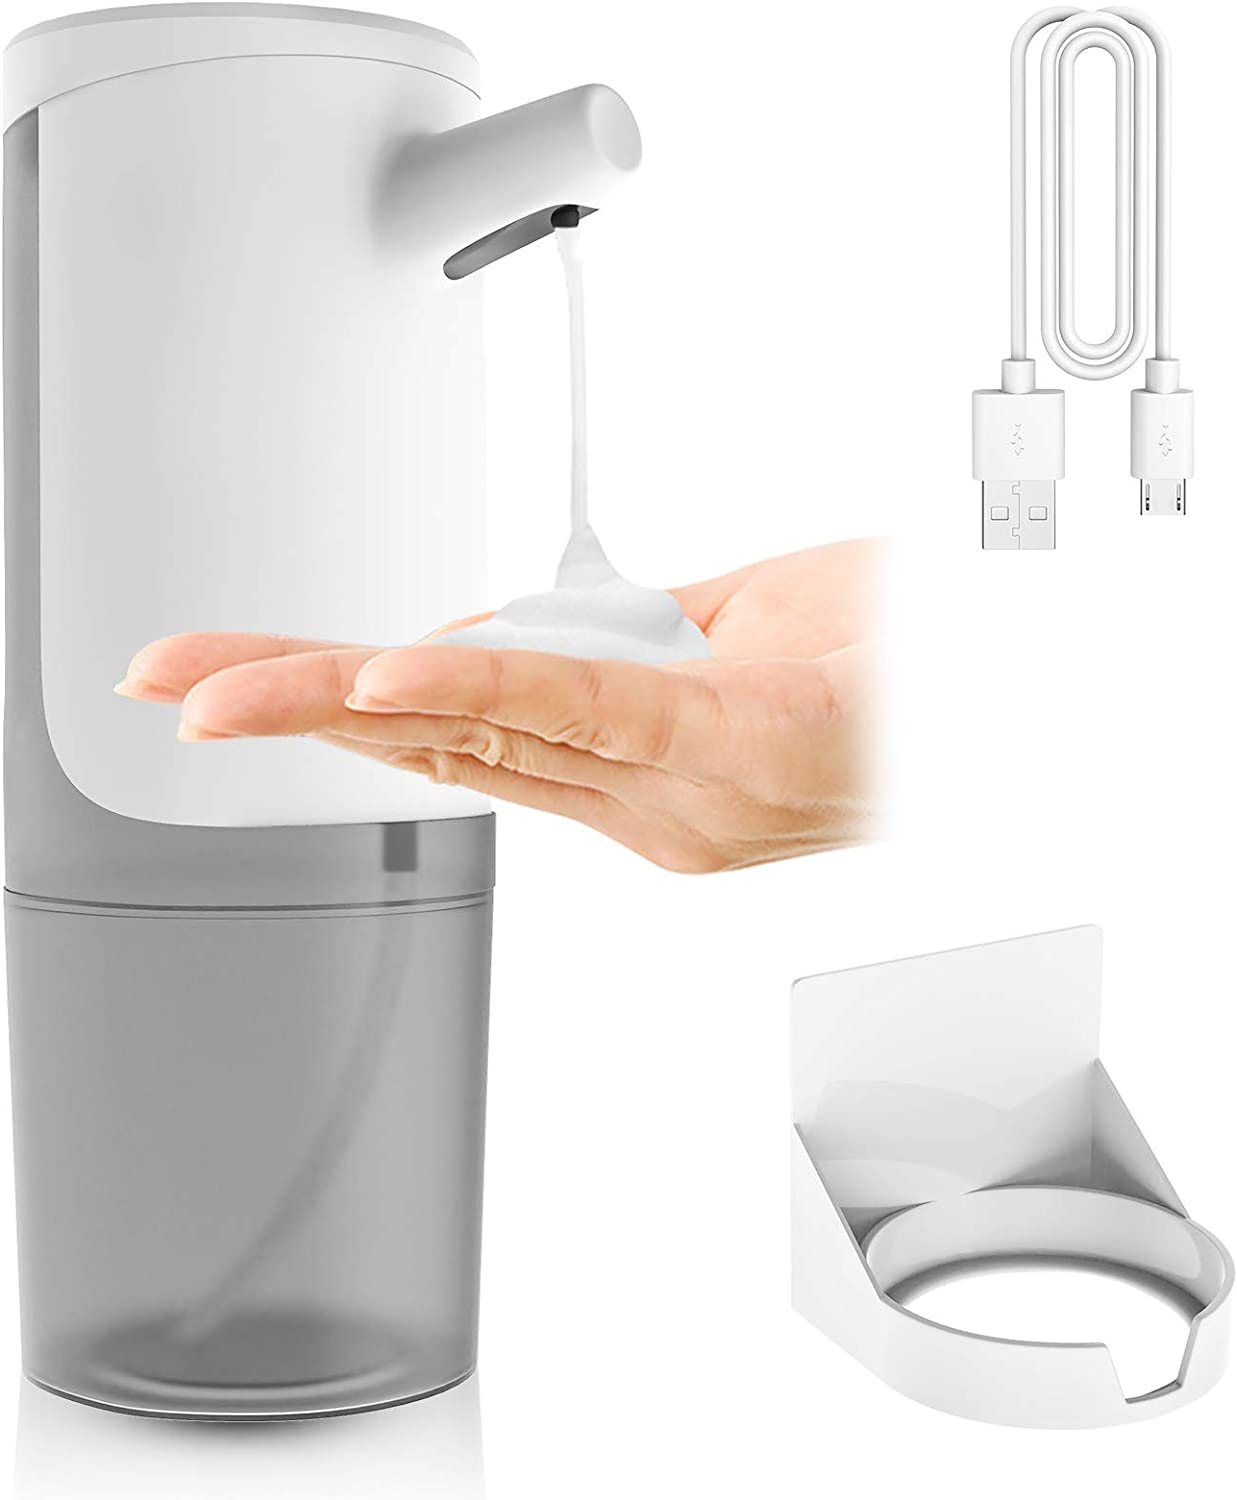 MRHUSH Automatic Foaming Hand Soap Dispenser Touchless, Countertop and Wall Mount, Rechargeable and Adjustable Foam Volume, IPX4 Waterproof, 450ml